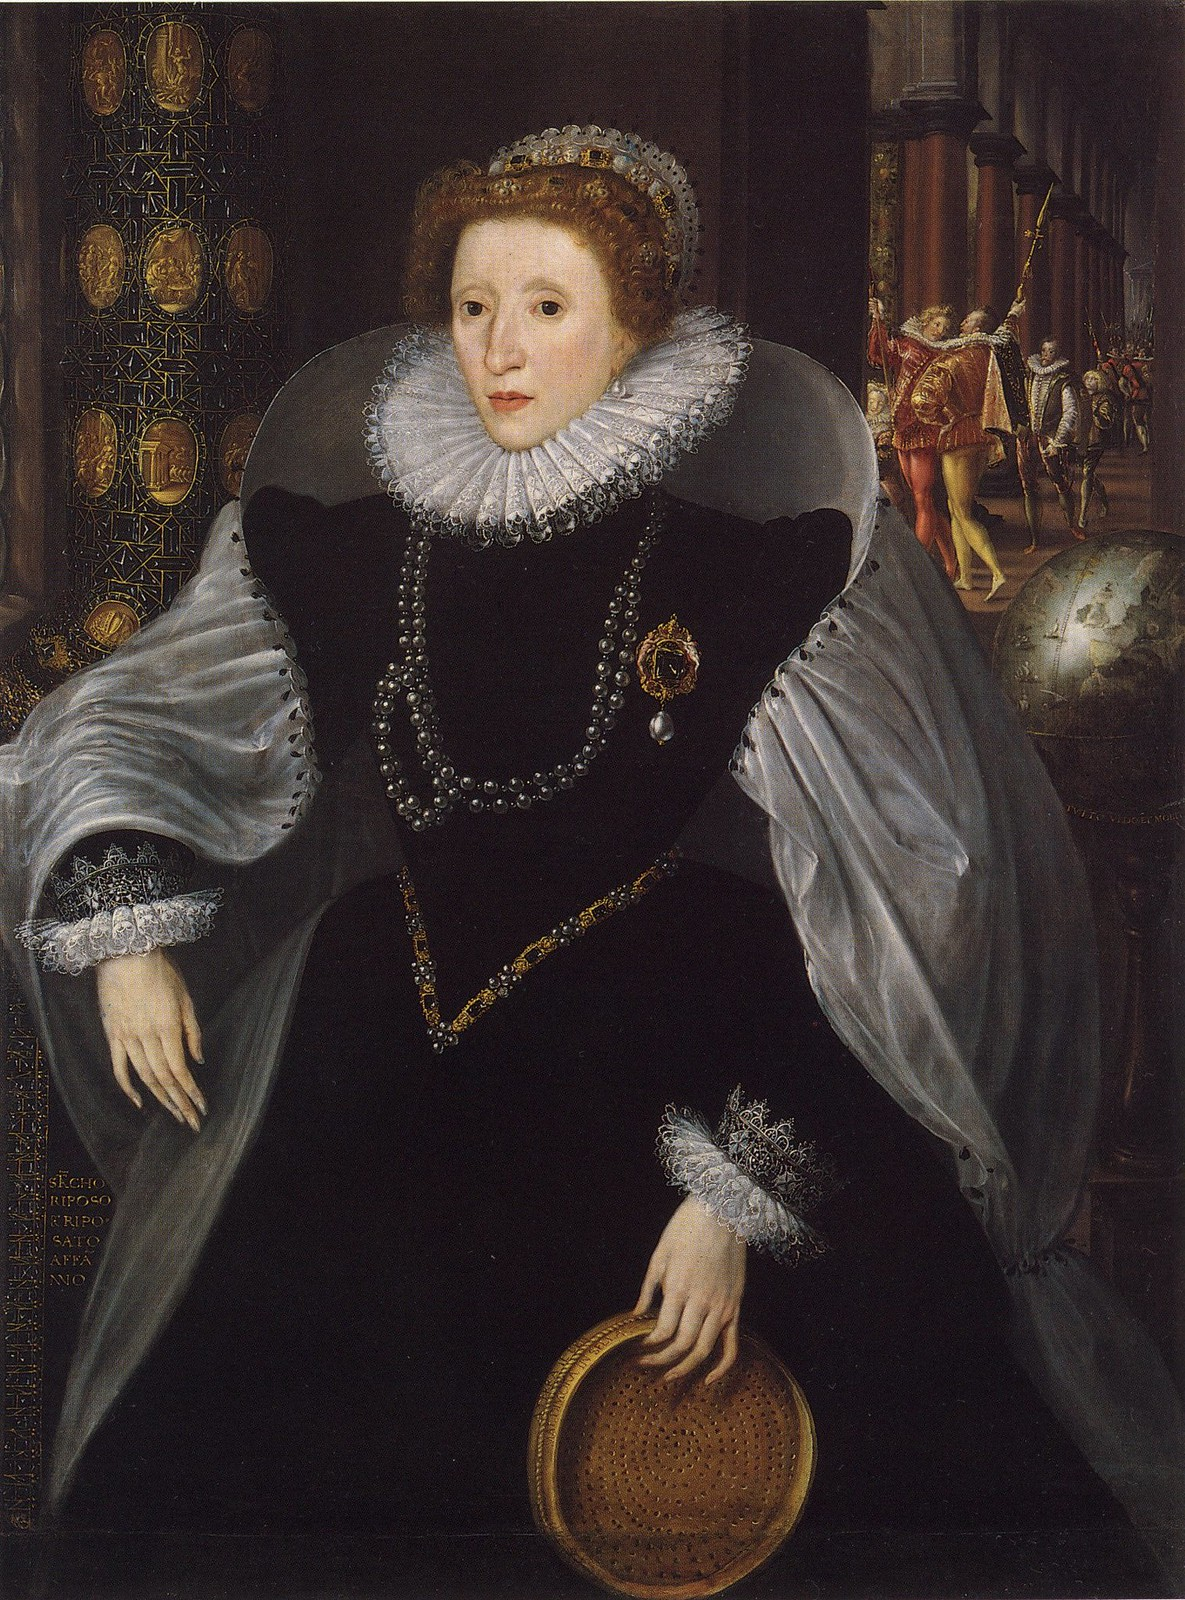 The Siena Sieve Portrait of Queen Elizabeth I by Quentin Metsys the Younger, 1583